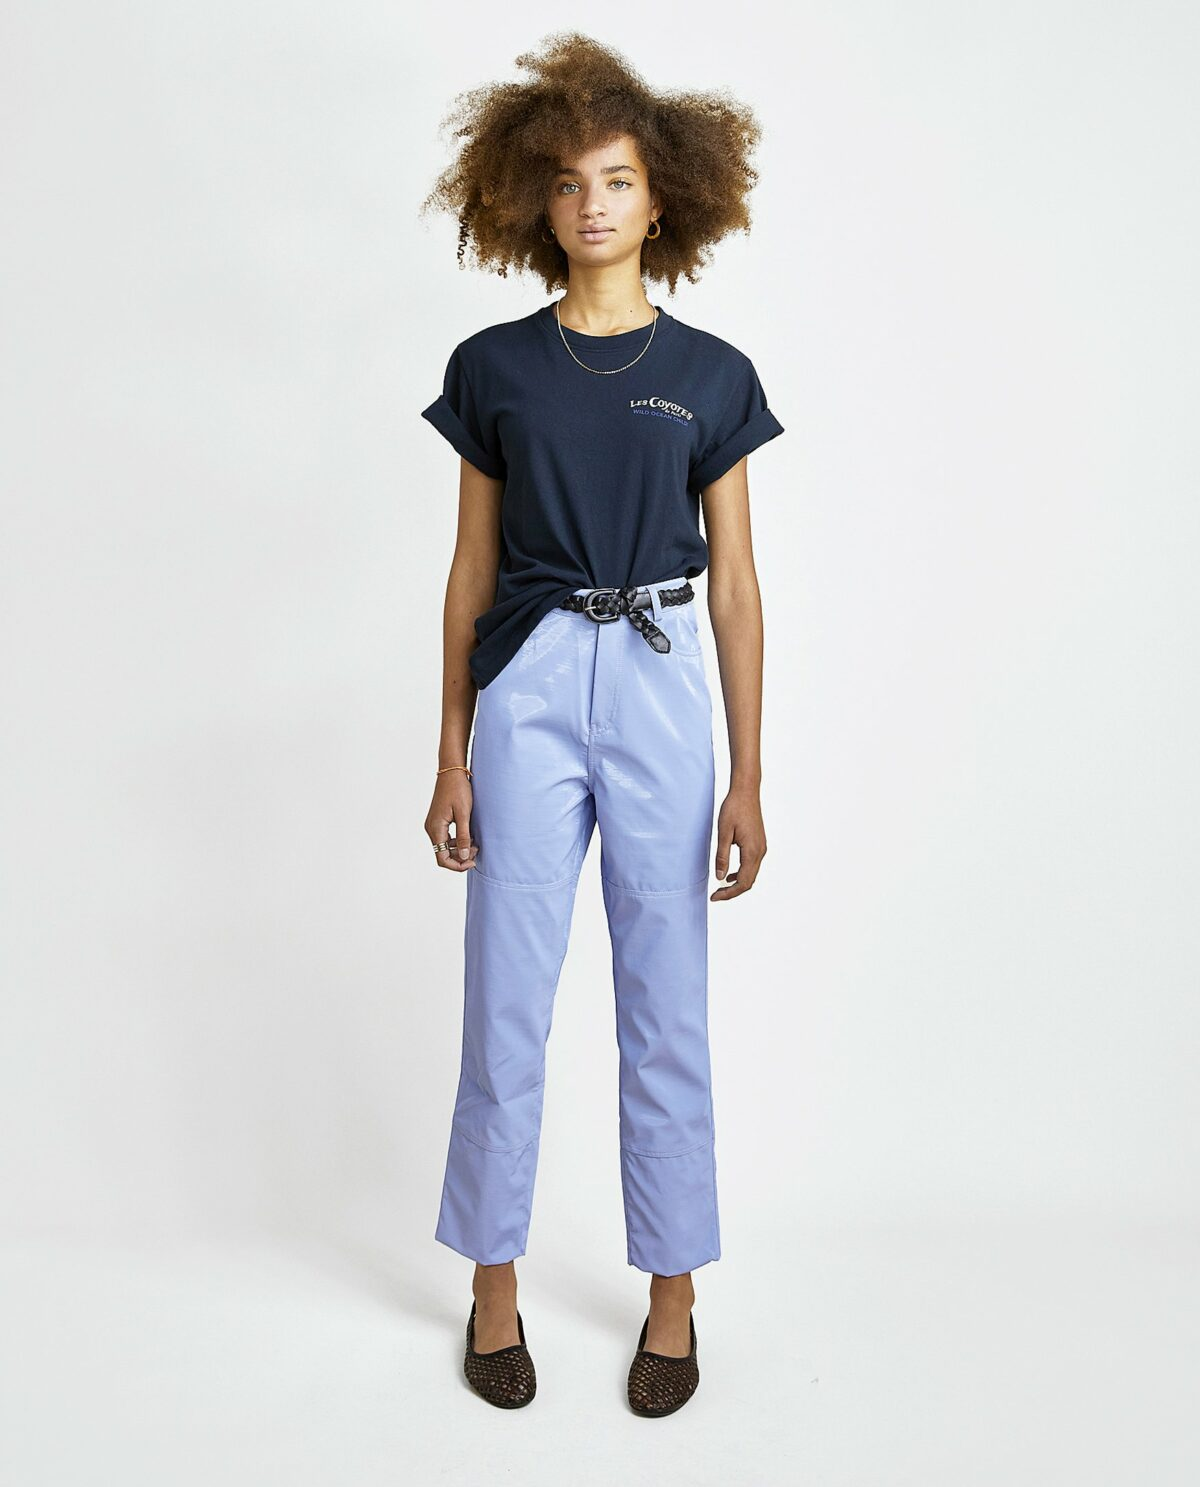 SS21_CindyTee_NimiTrousers_Front_2000x